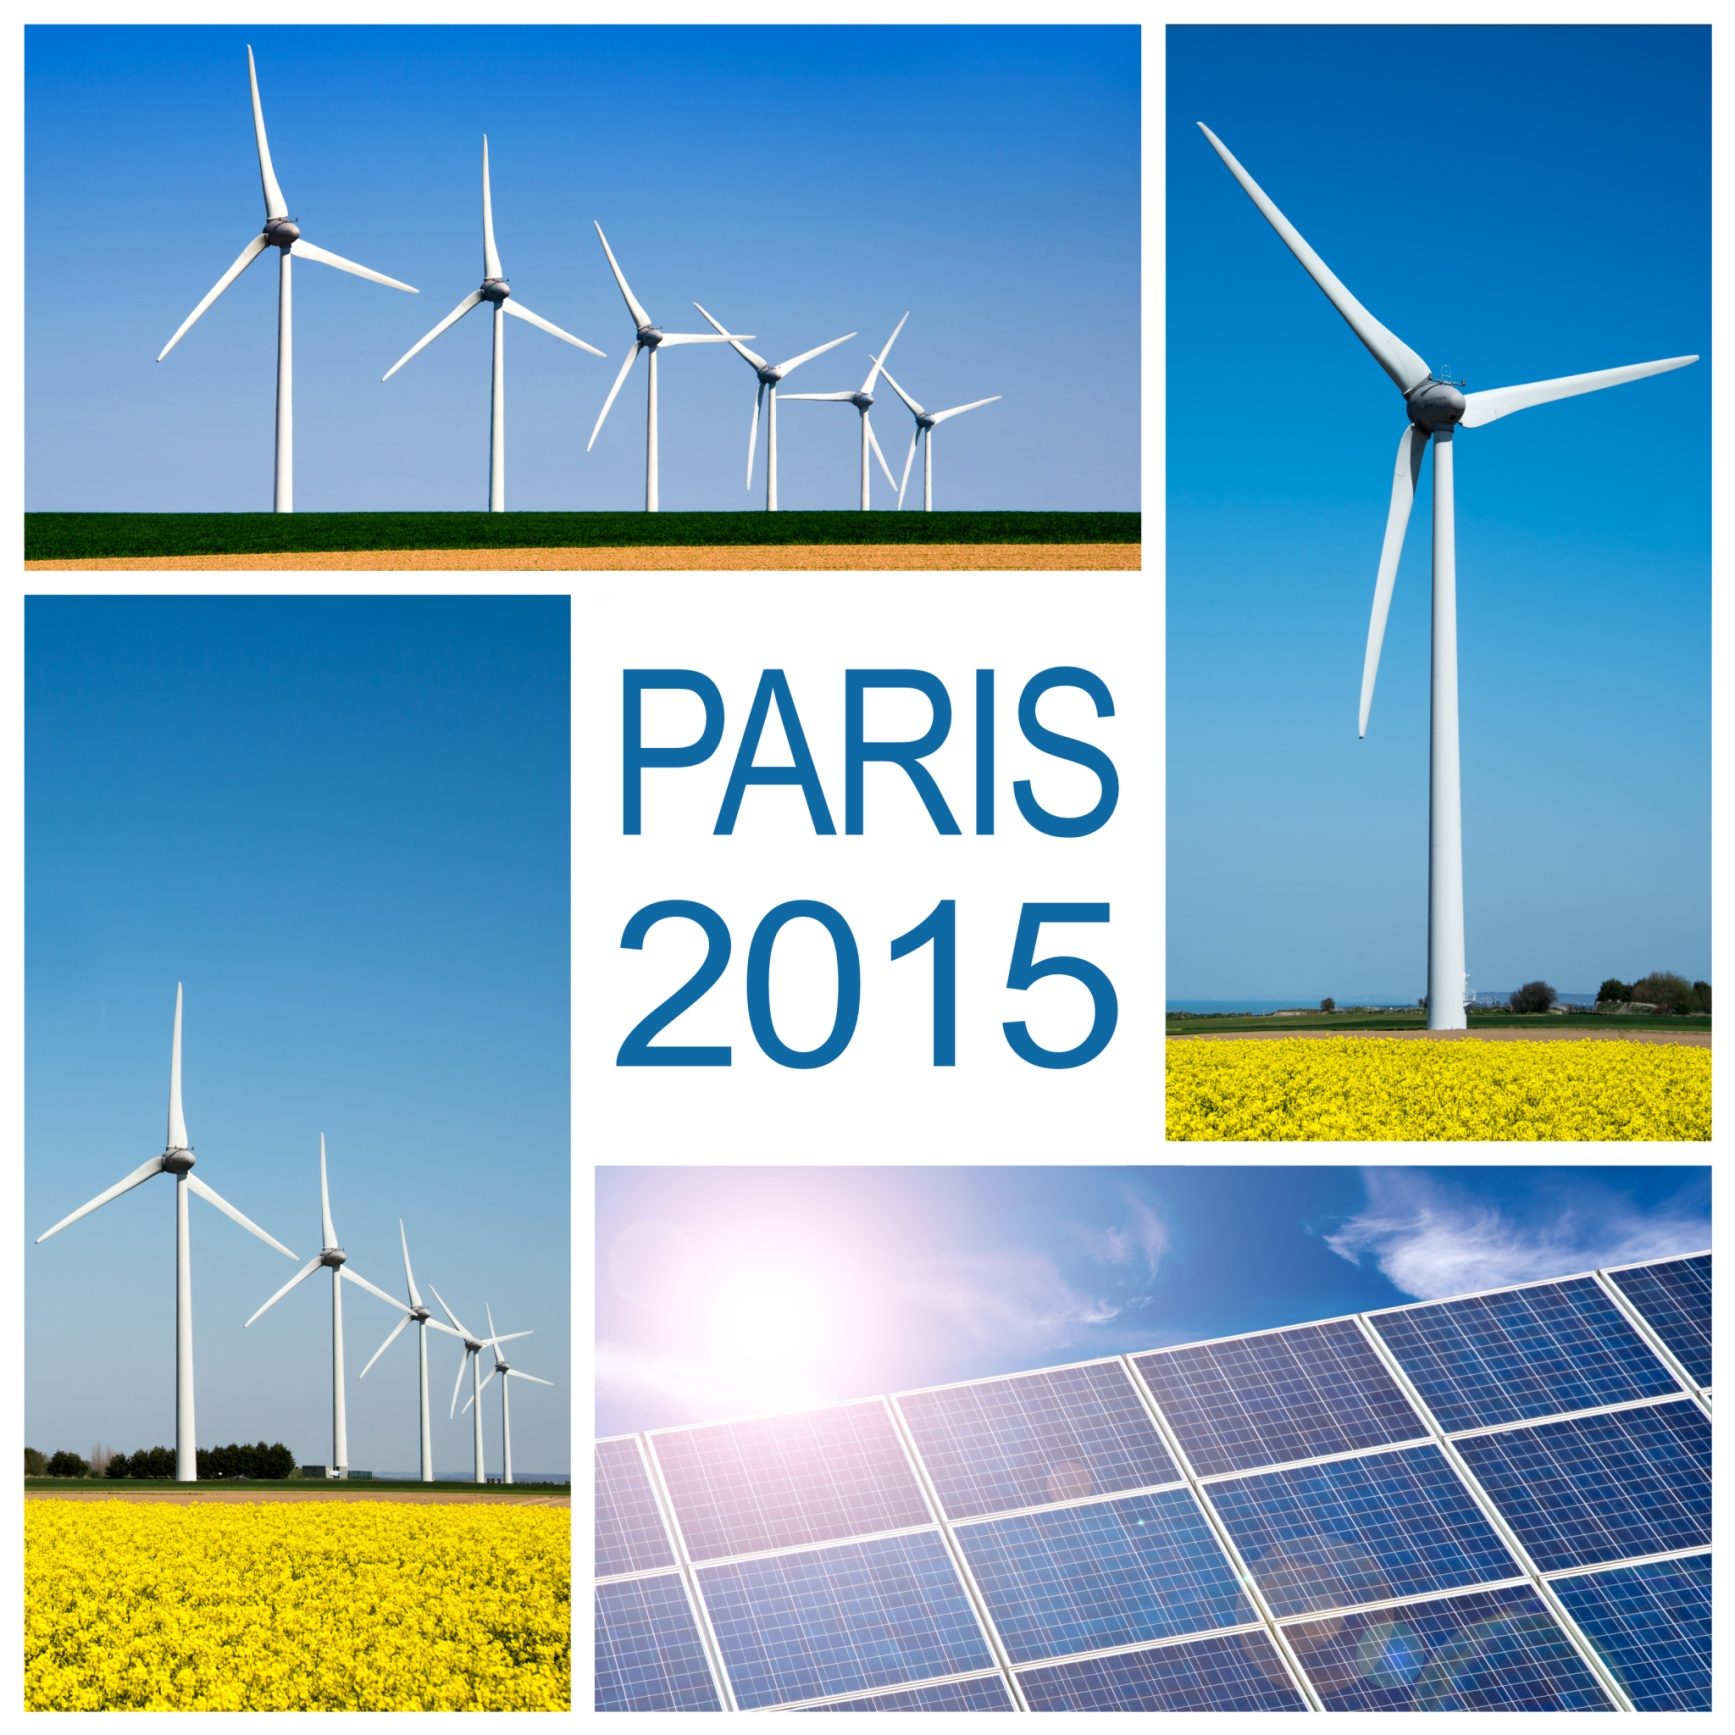 Landis+Gyr addresses 5 climate questions ahead of COP21 meeting in Paris